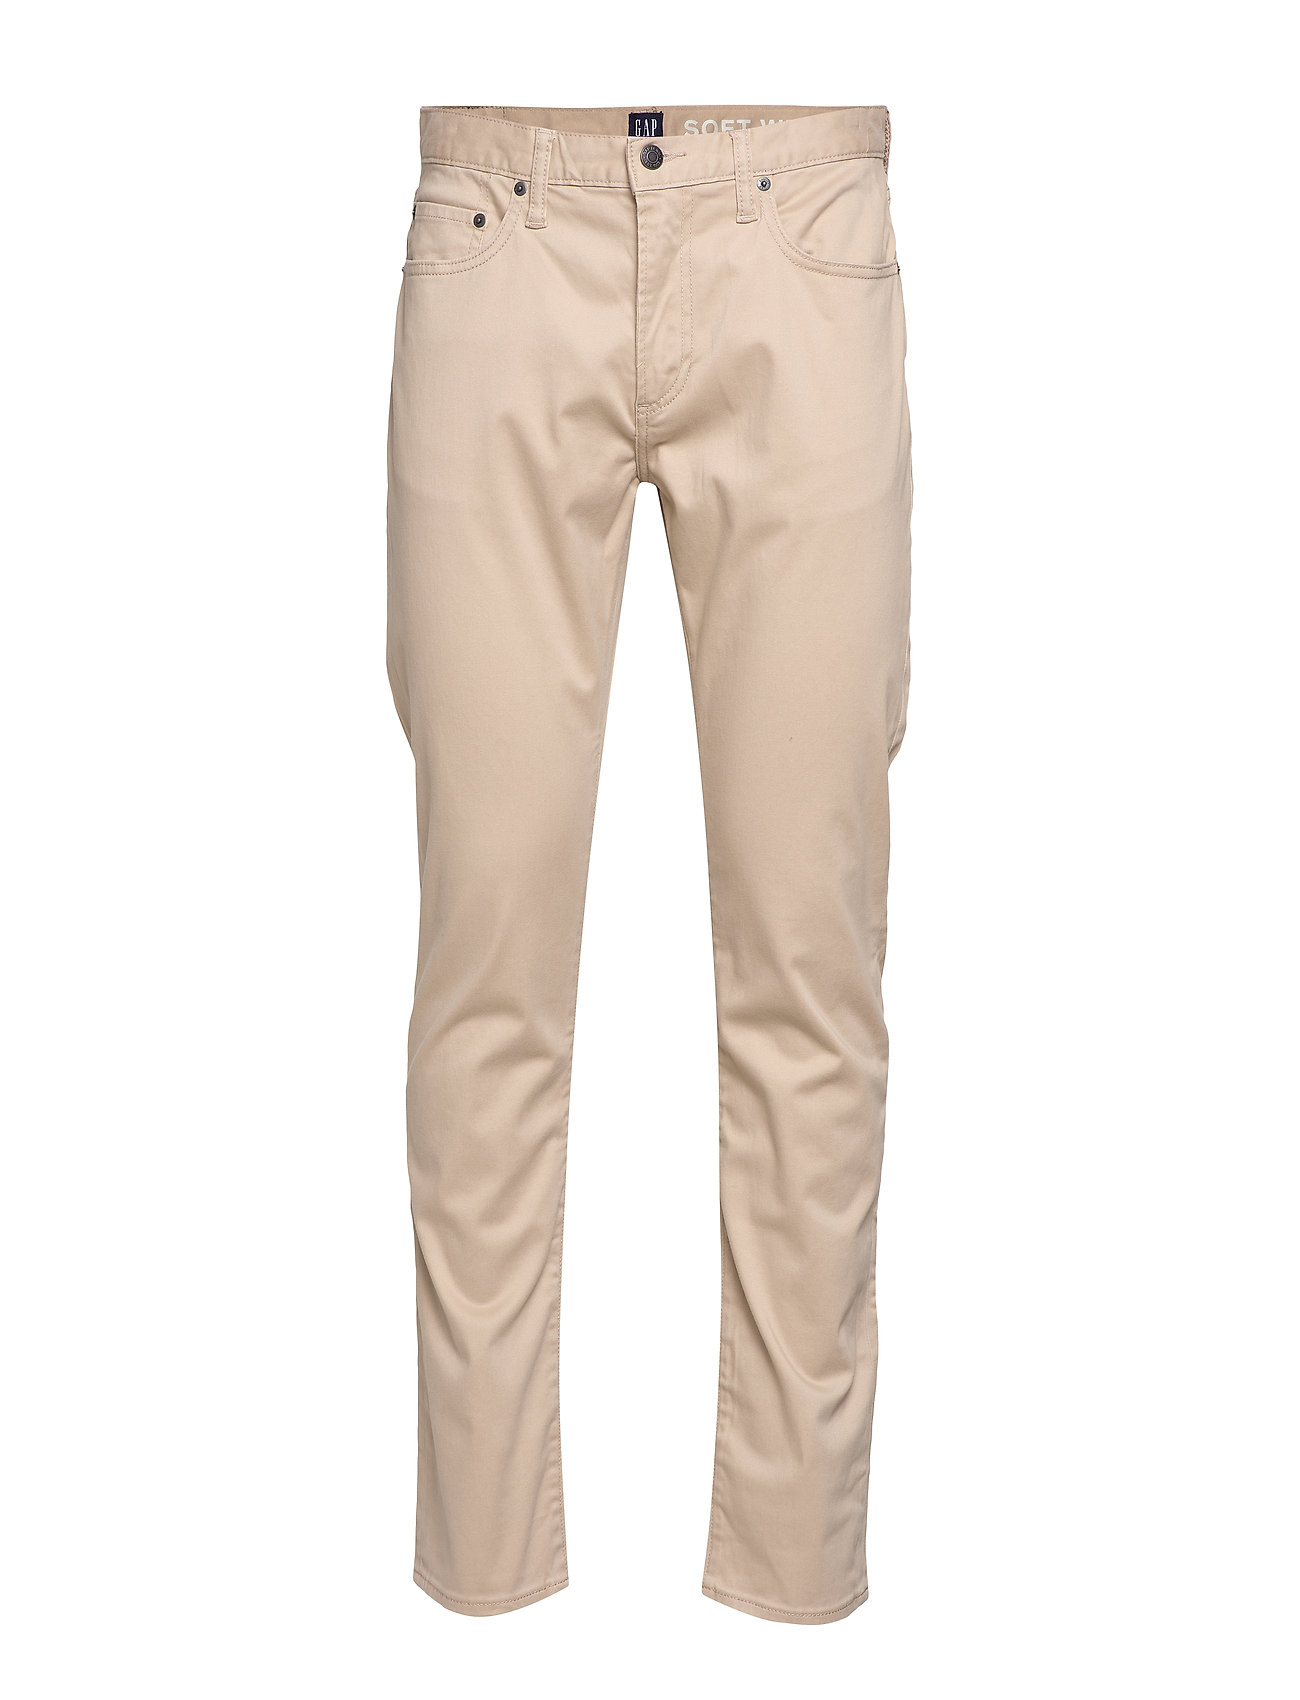 GAP Soft Wear Slim Jeans with GapFlex - KHAKI1